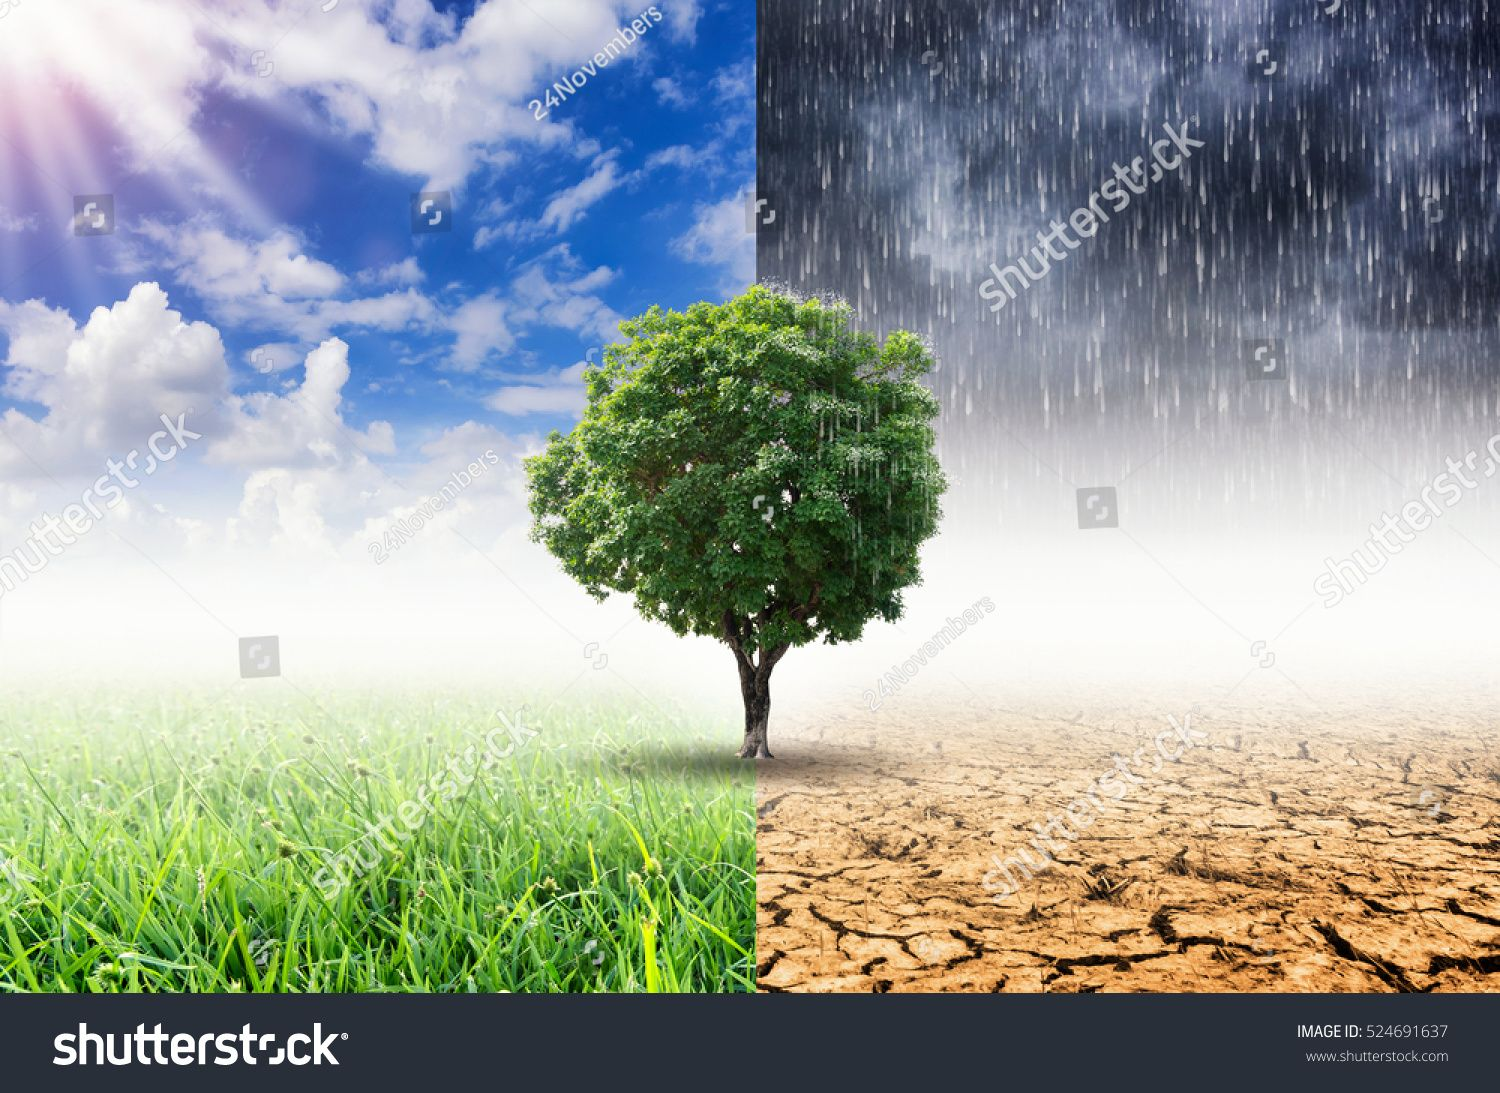 Plants And Climate Change With The Concept Of Global Warming